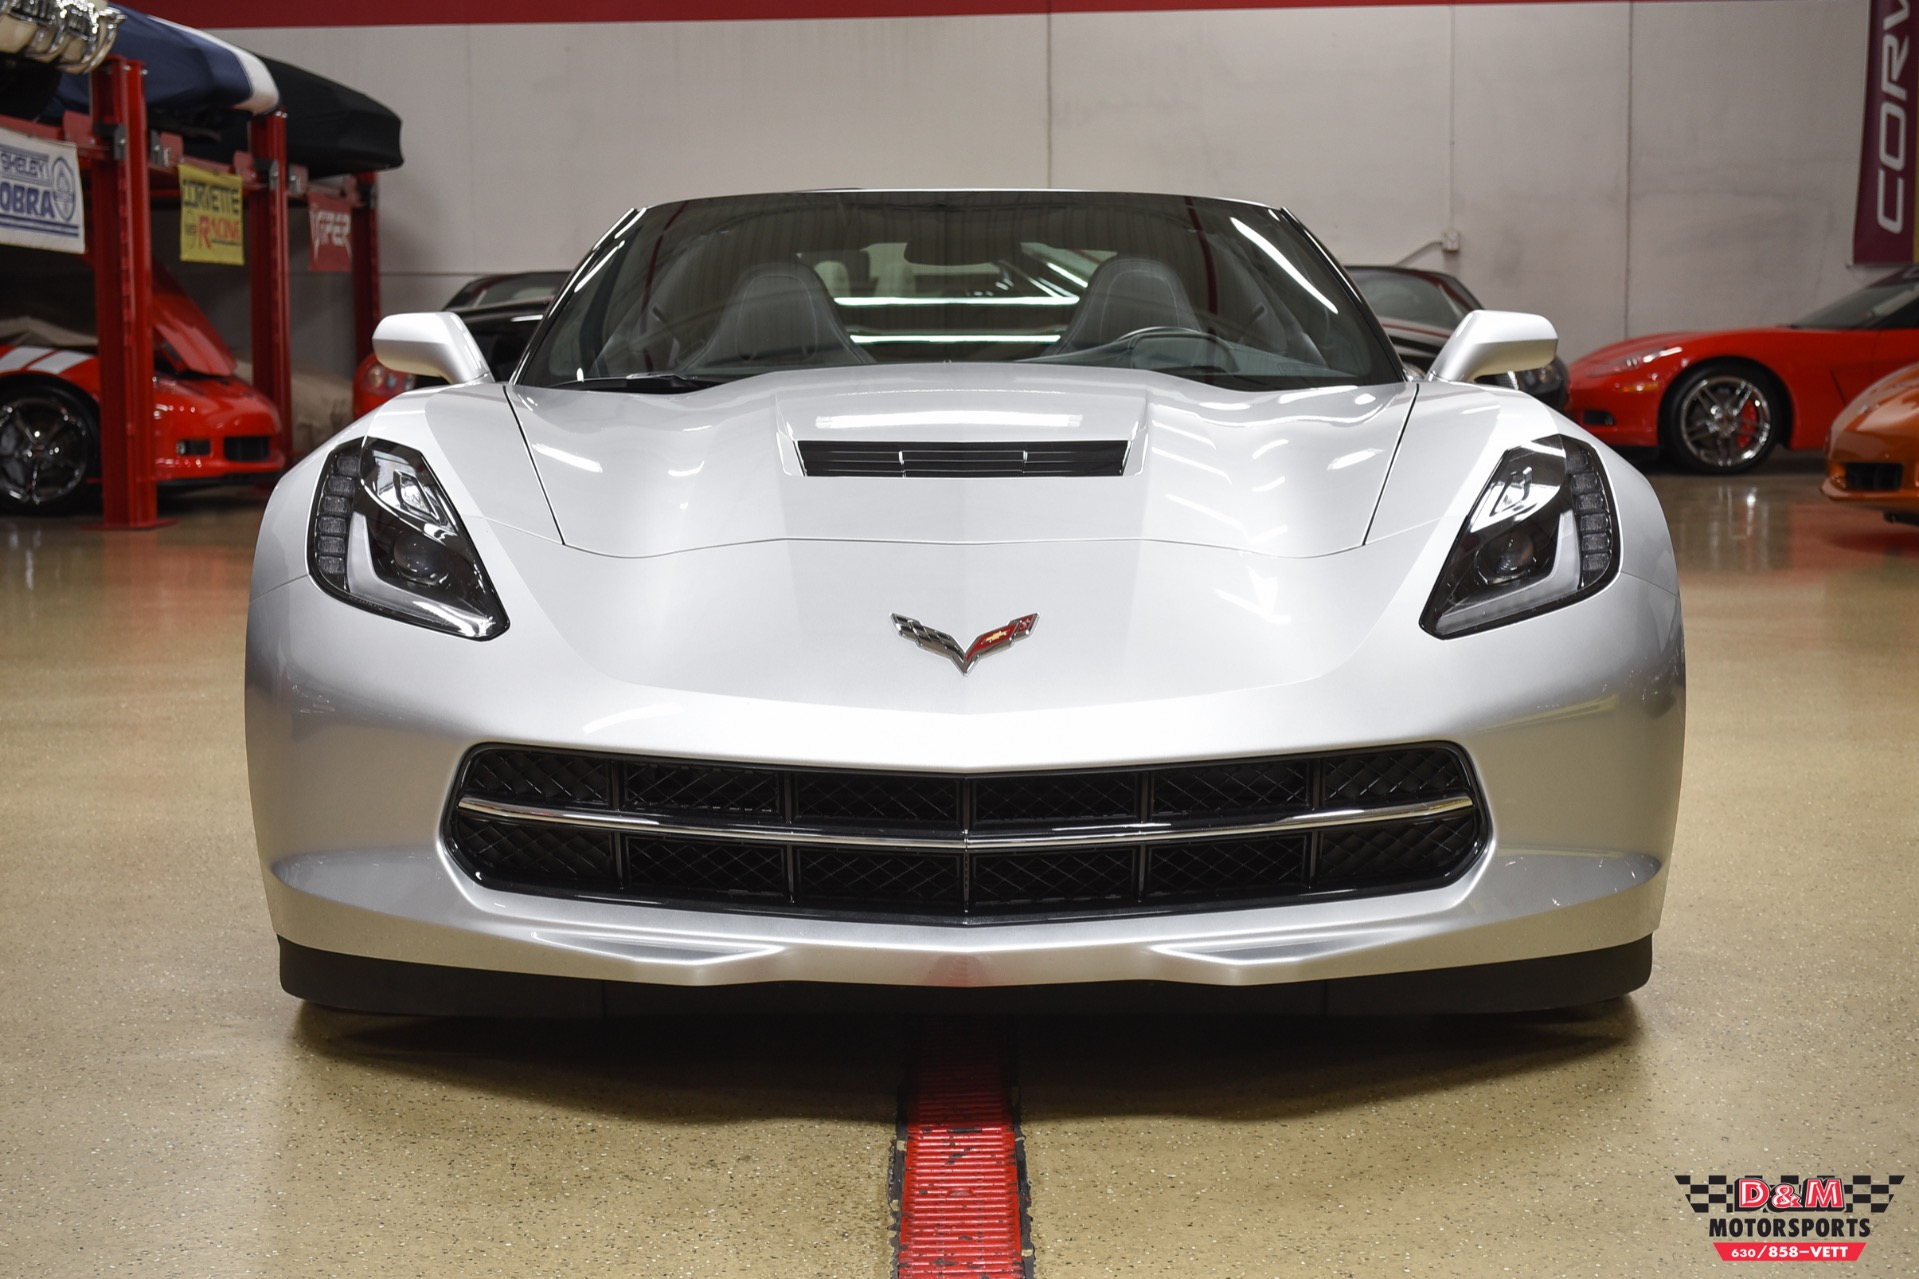 Used 2014 Chevrolet Corvette Stingray Coupe | Glen Ellyn, IL